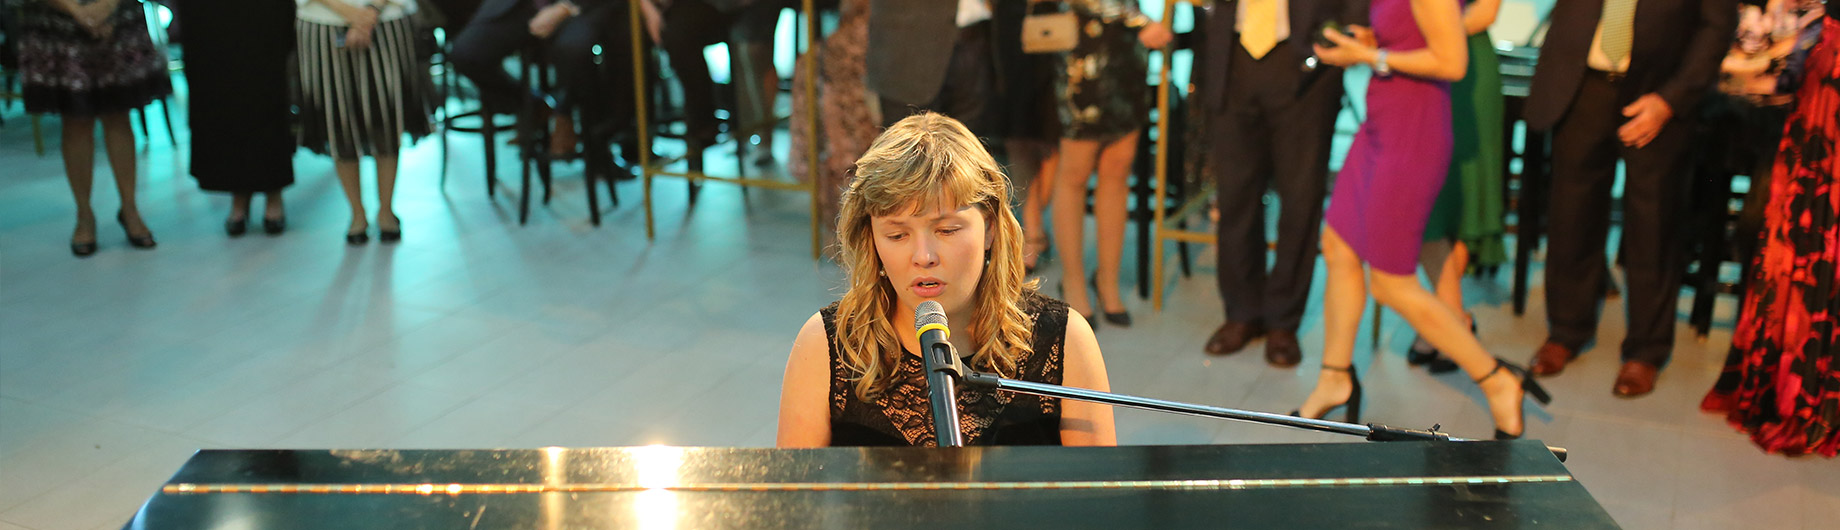 A female live musician and vocalist performing at an Abilities Centre event